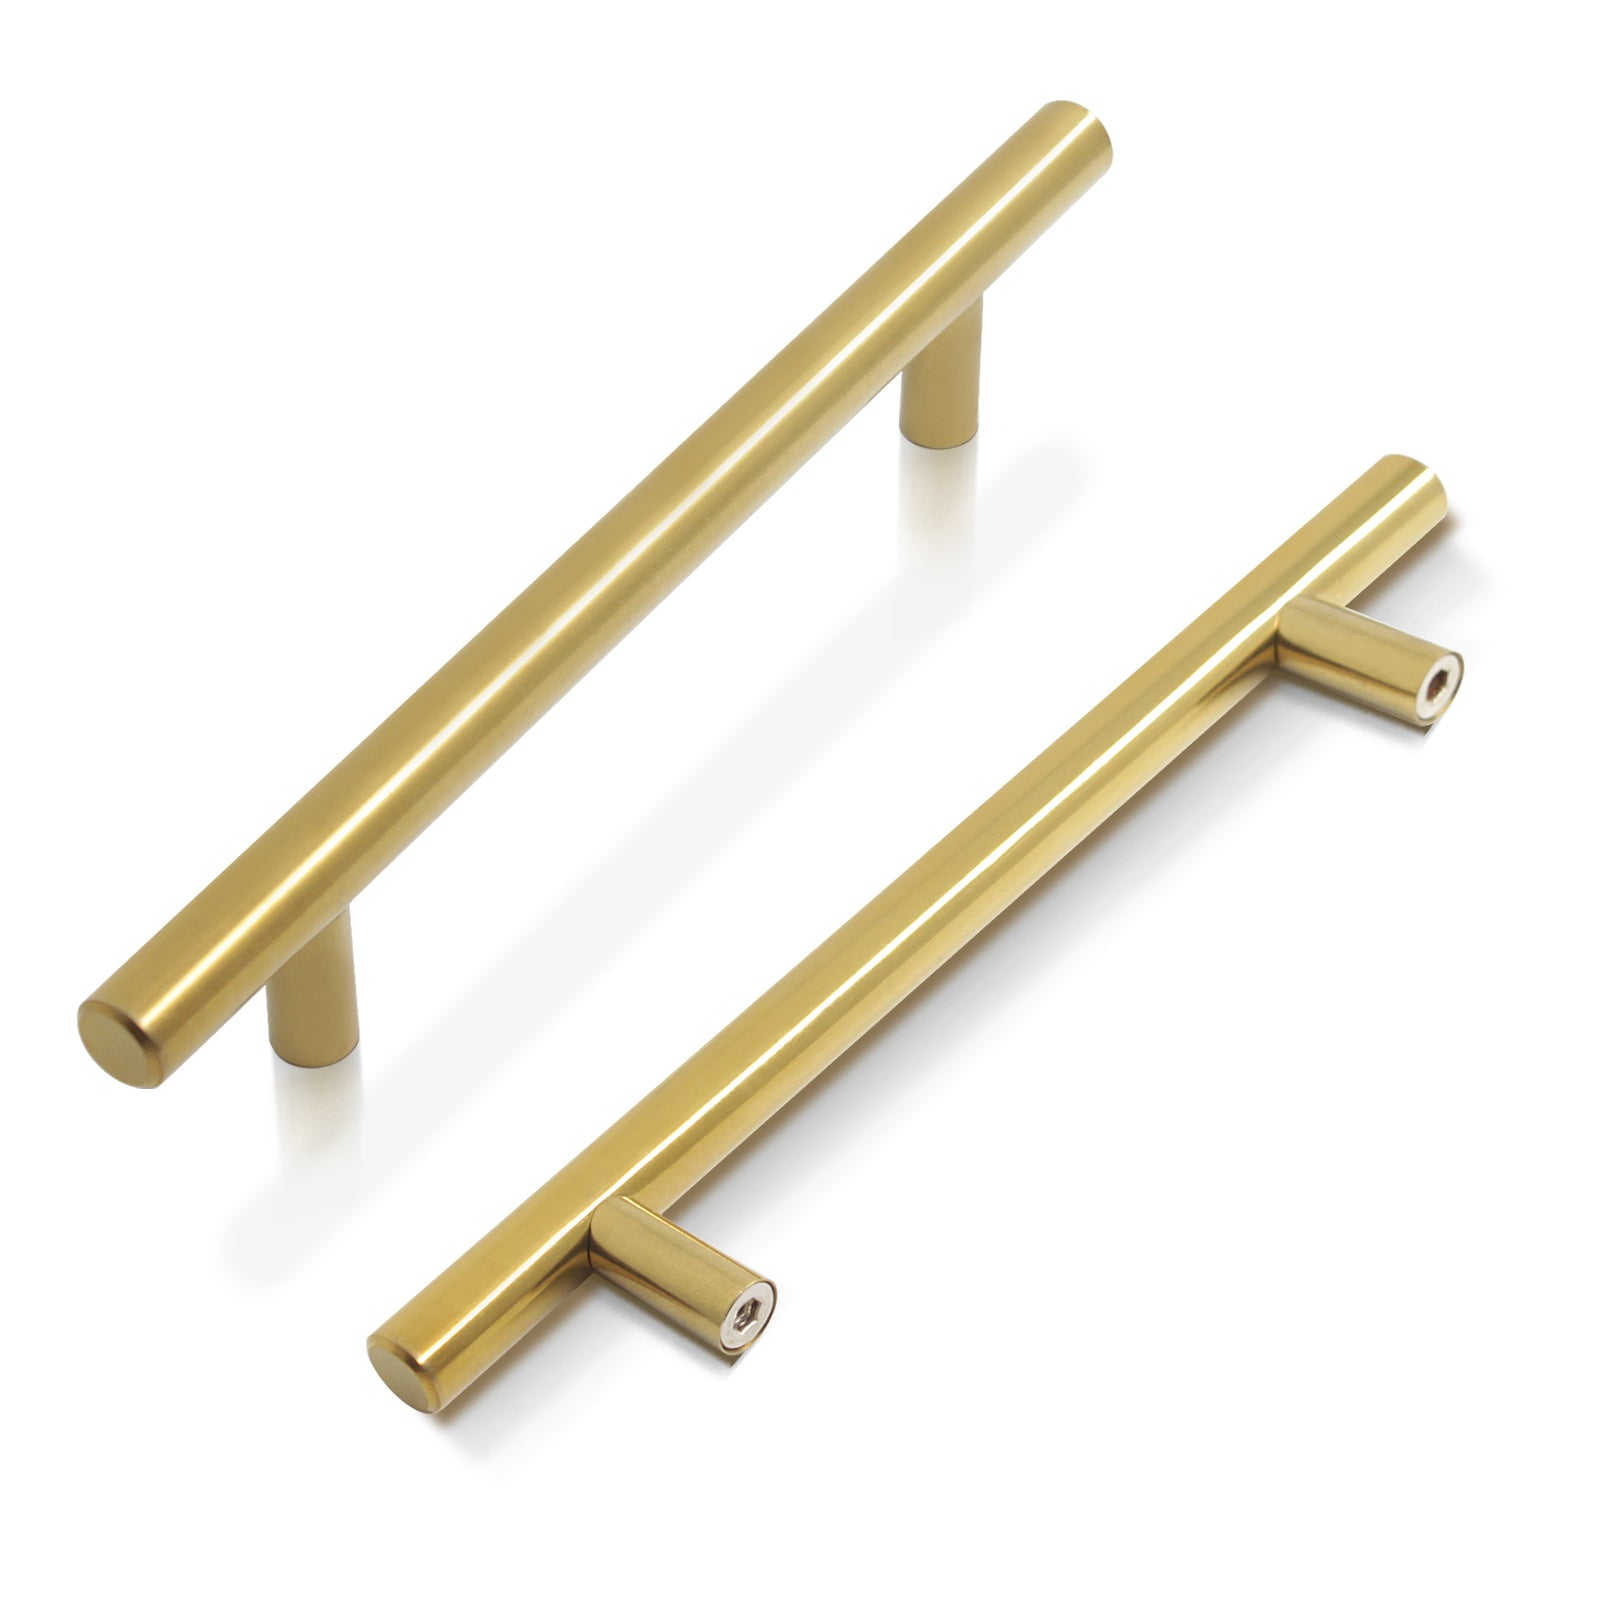 Stainless Steel T Bar Cabinet Handles Gold Finish, 128mm 5inch Hole Centers